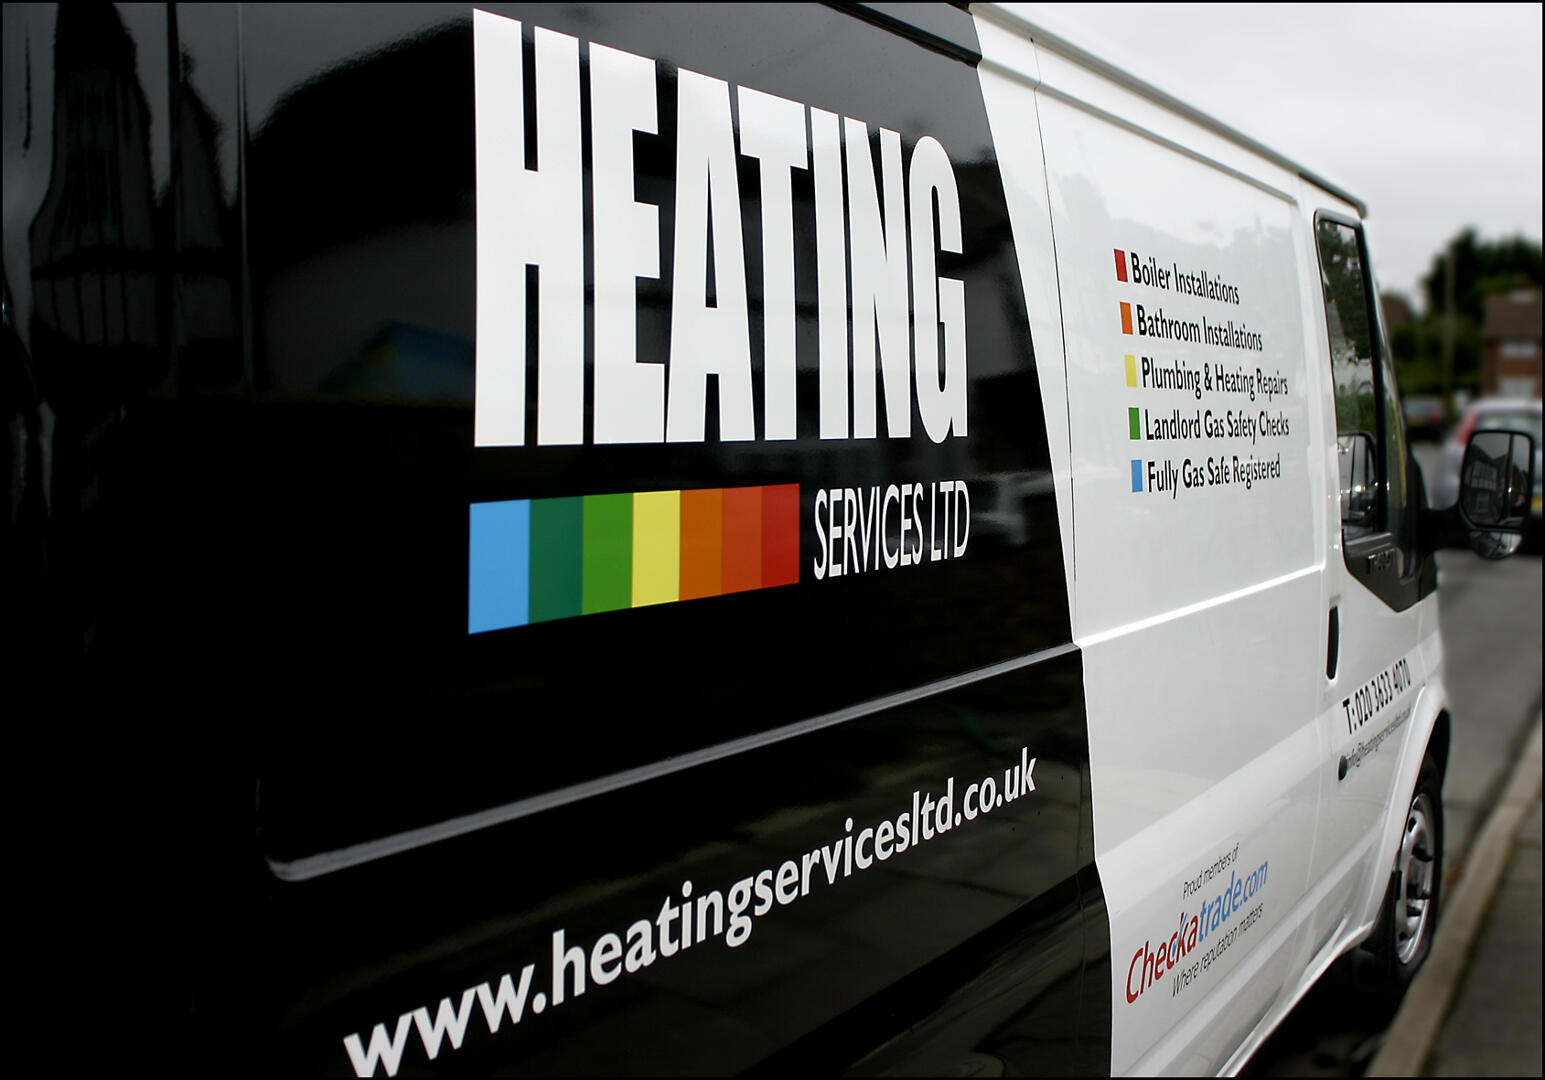 Plumbers Boiler Installation Service and Repairs and Bathroom Design and Installation by Heating Services Ltd in West Wickham (1)